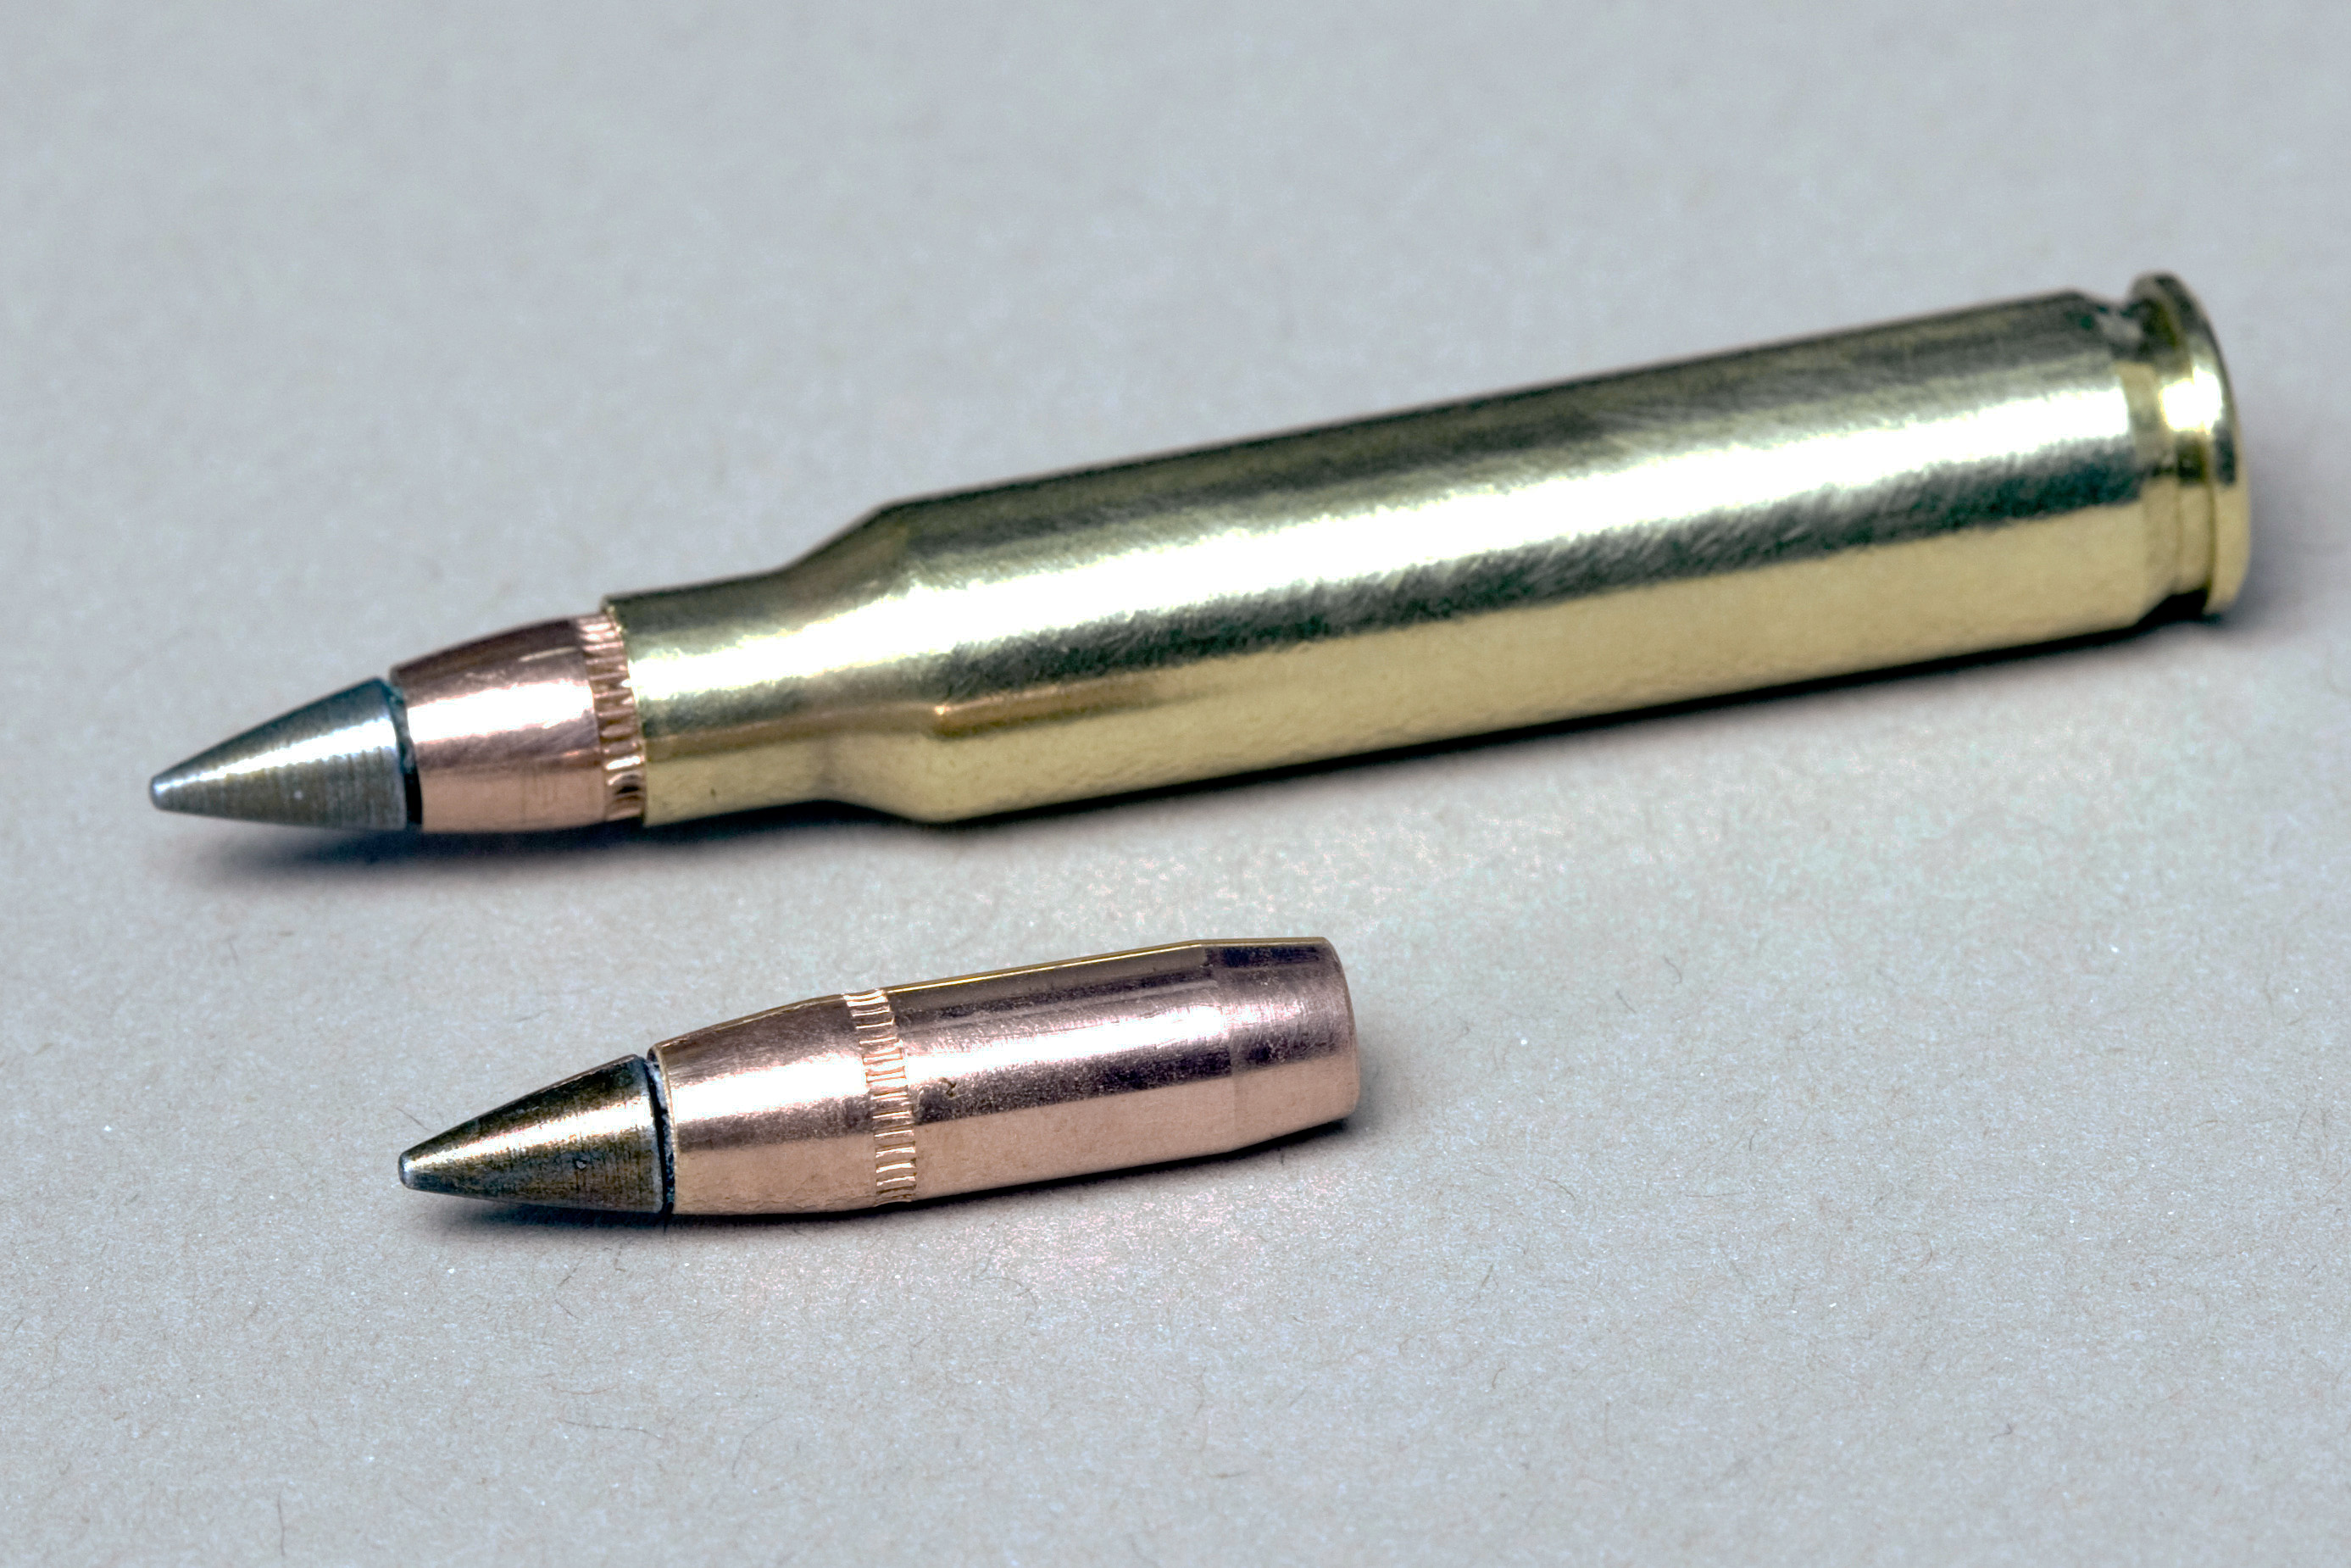 Conversion Chart For Metric System To Imperial: 5.56 M855A1 Enhanced Performance Round.jpg - Wikimedia Commons,Chart